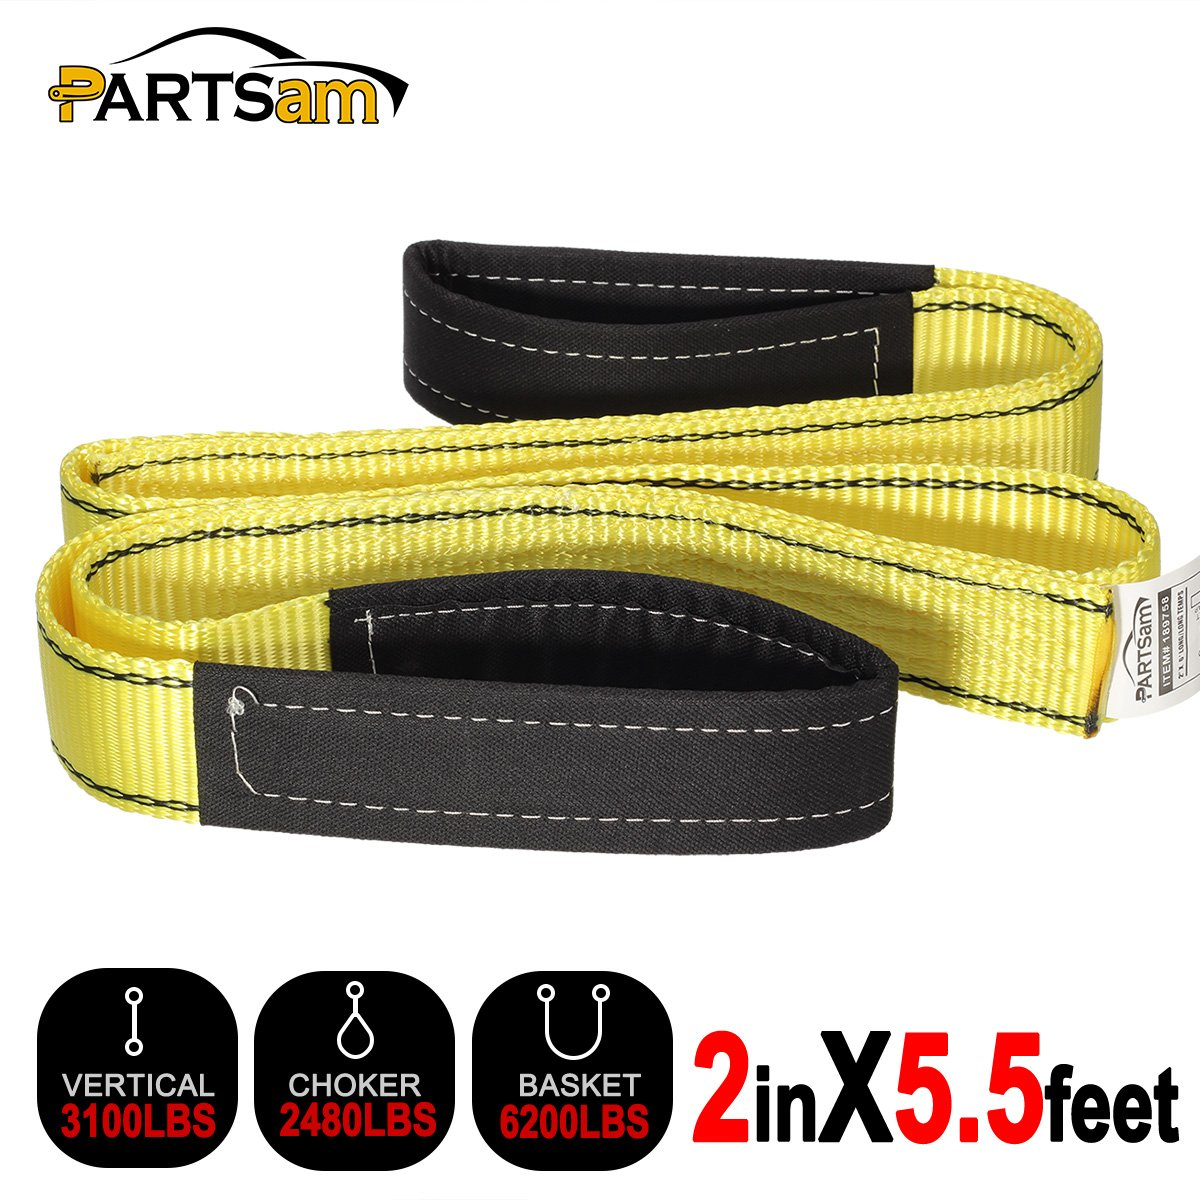 Premium Crane Towing Strap 5.5feet x 2inch Durable 3400Dtex - Heavy Duty Web Sling - Corrosion Resistance Polyester Industrial Flat Eye-Eye Ropes by Partsam